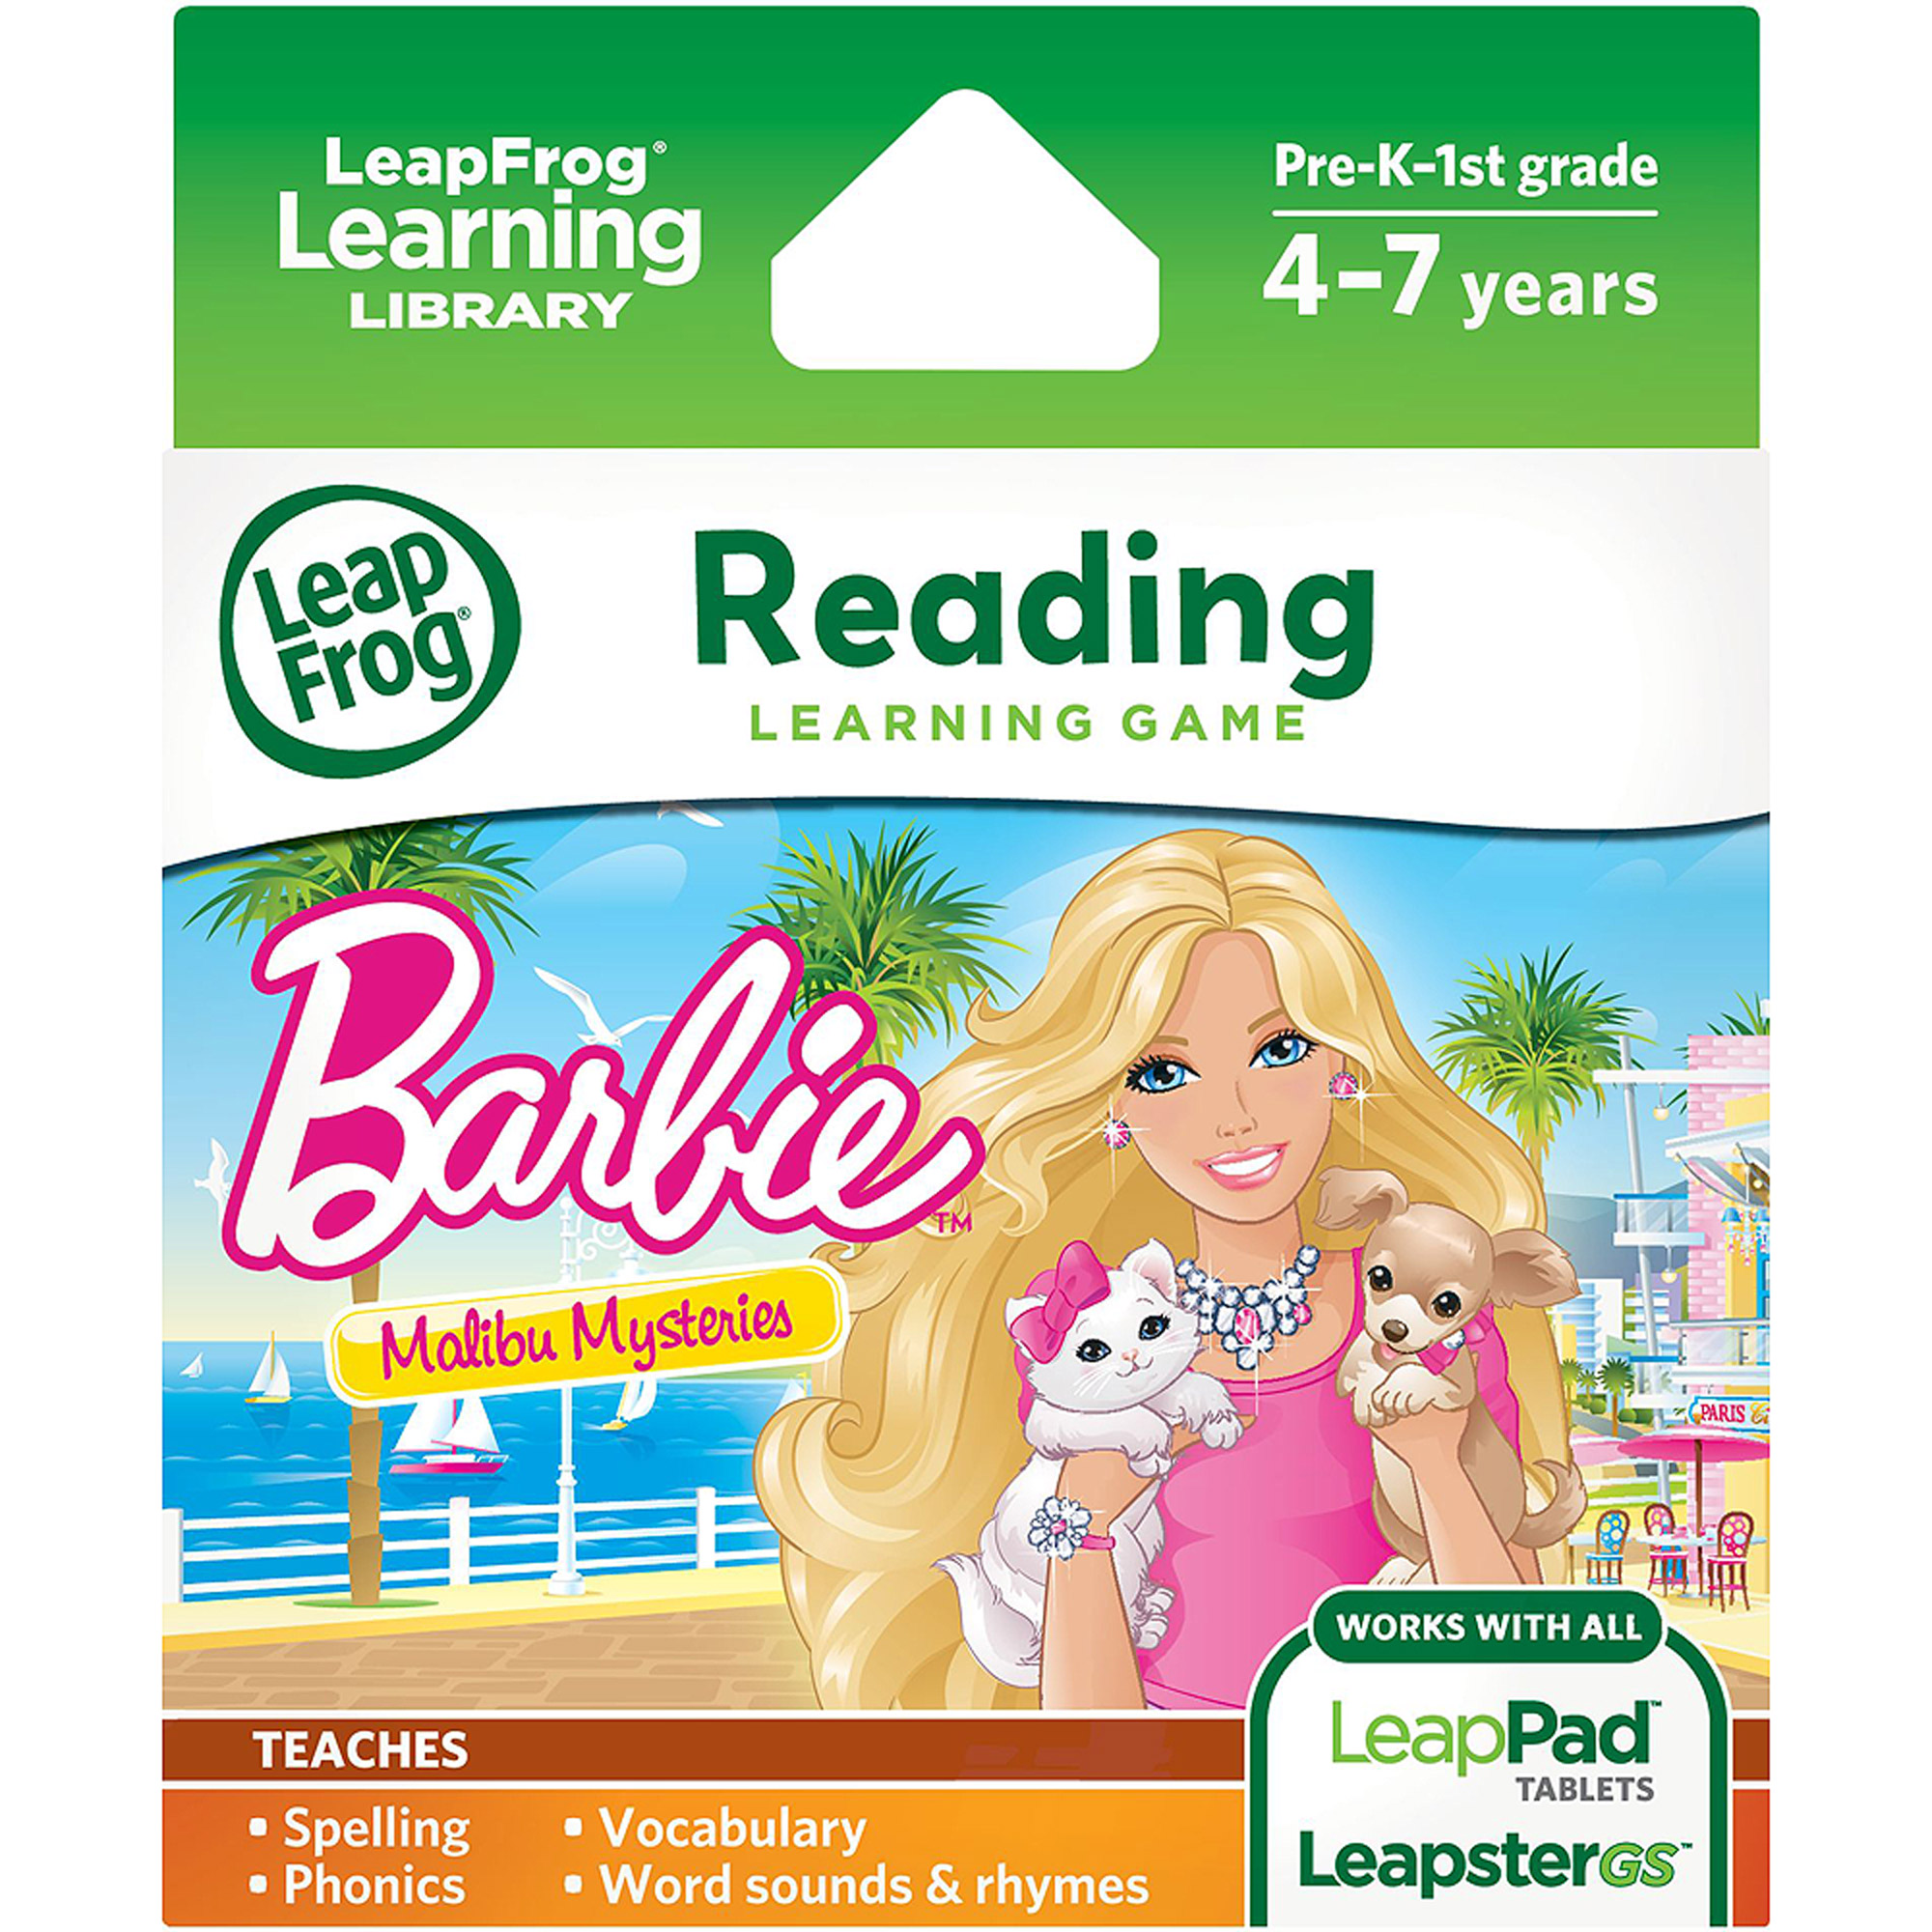 LeapFrog Learning Game: Barbie Malibu Mysteries (for LeapPad Tablets and LeapsterGS)